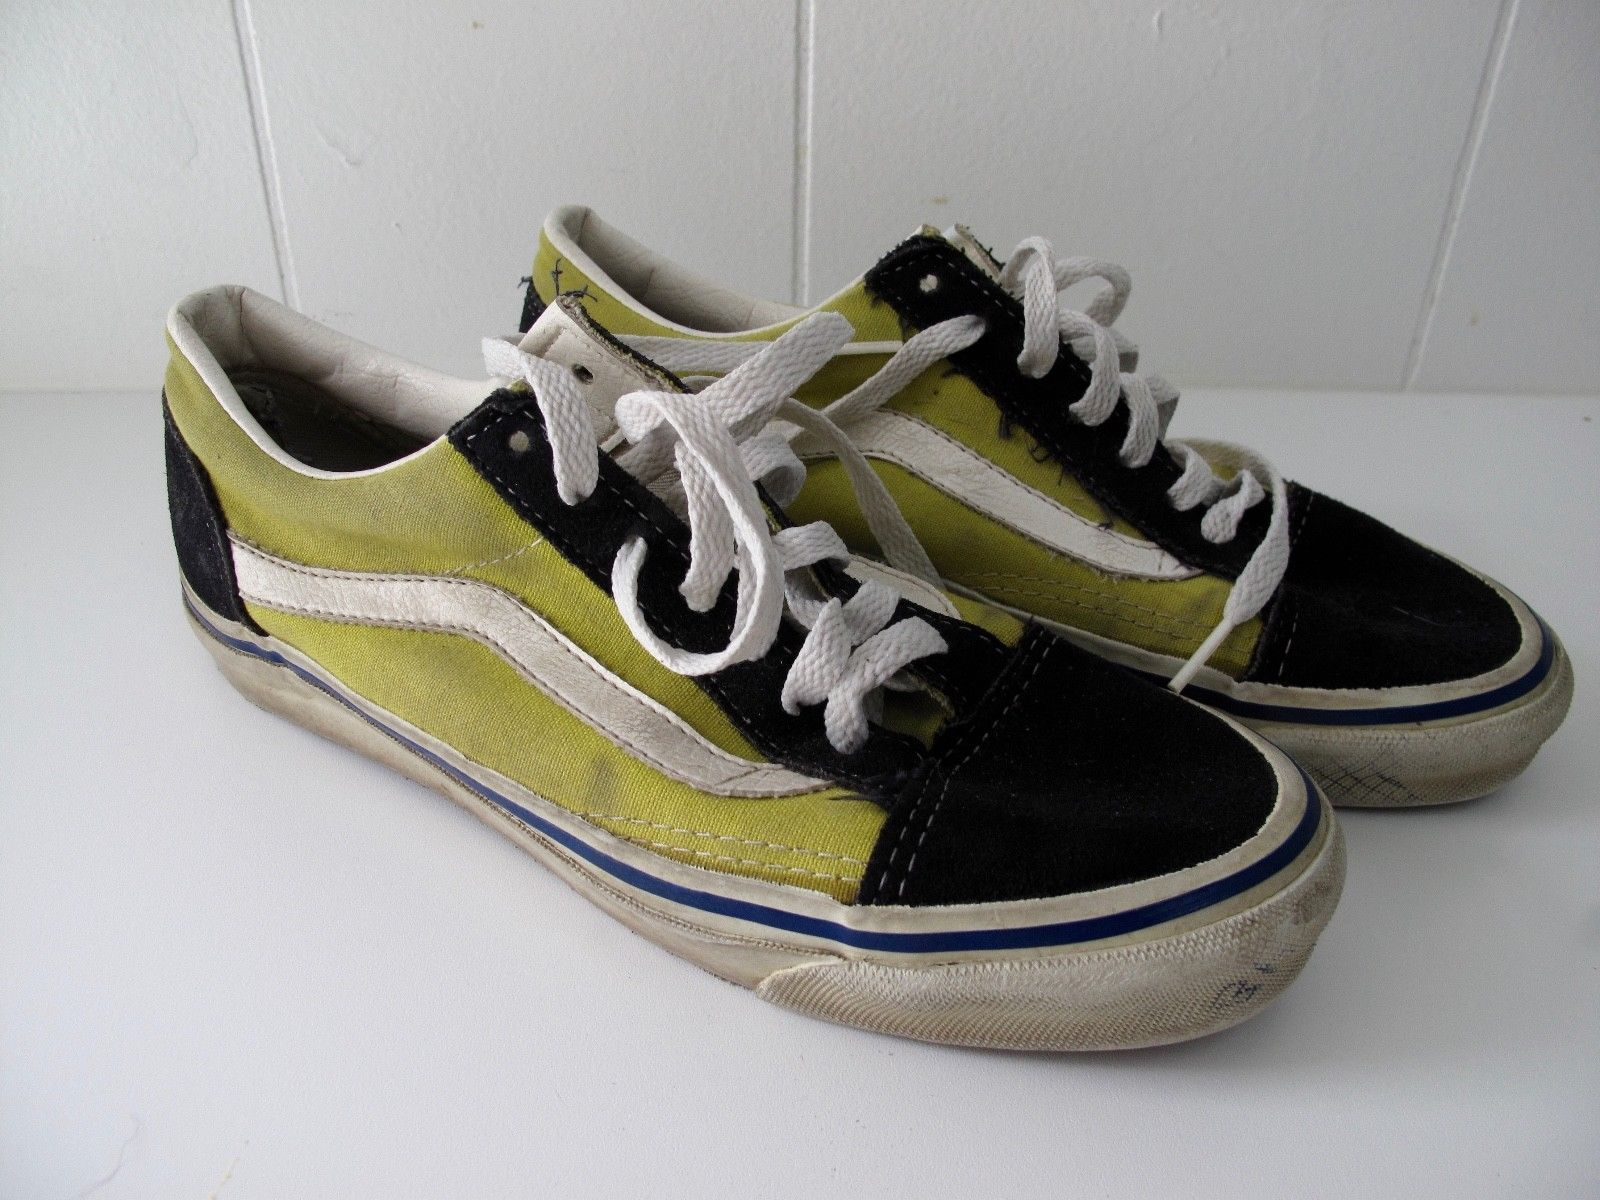 b3450748d4 Vintage Vans Old Skool Made in USA Size 8-8.5 Yellow Black White ...